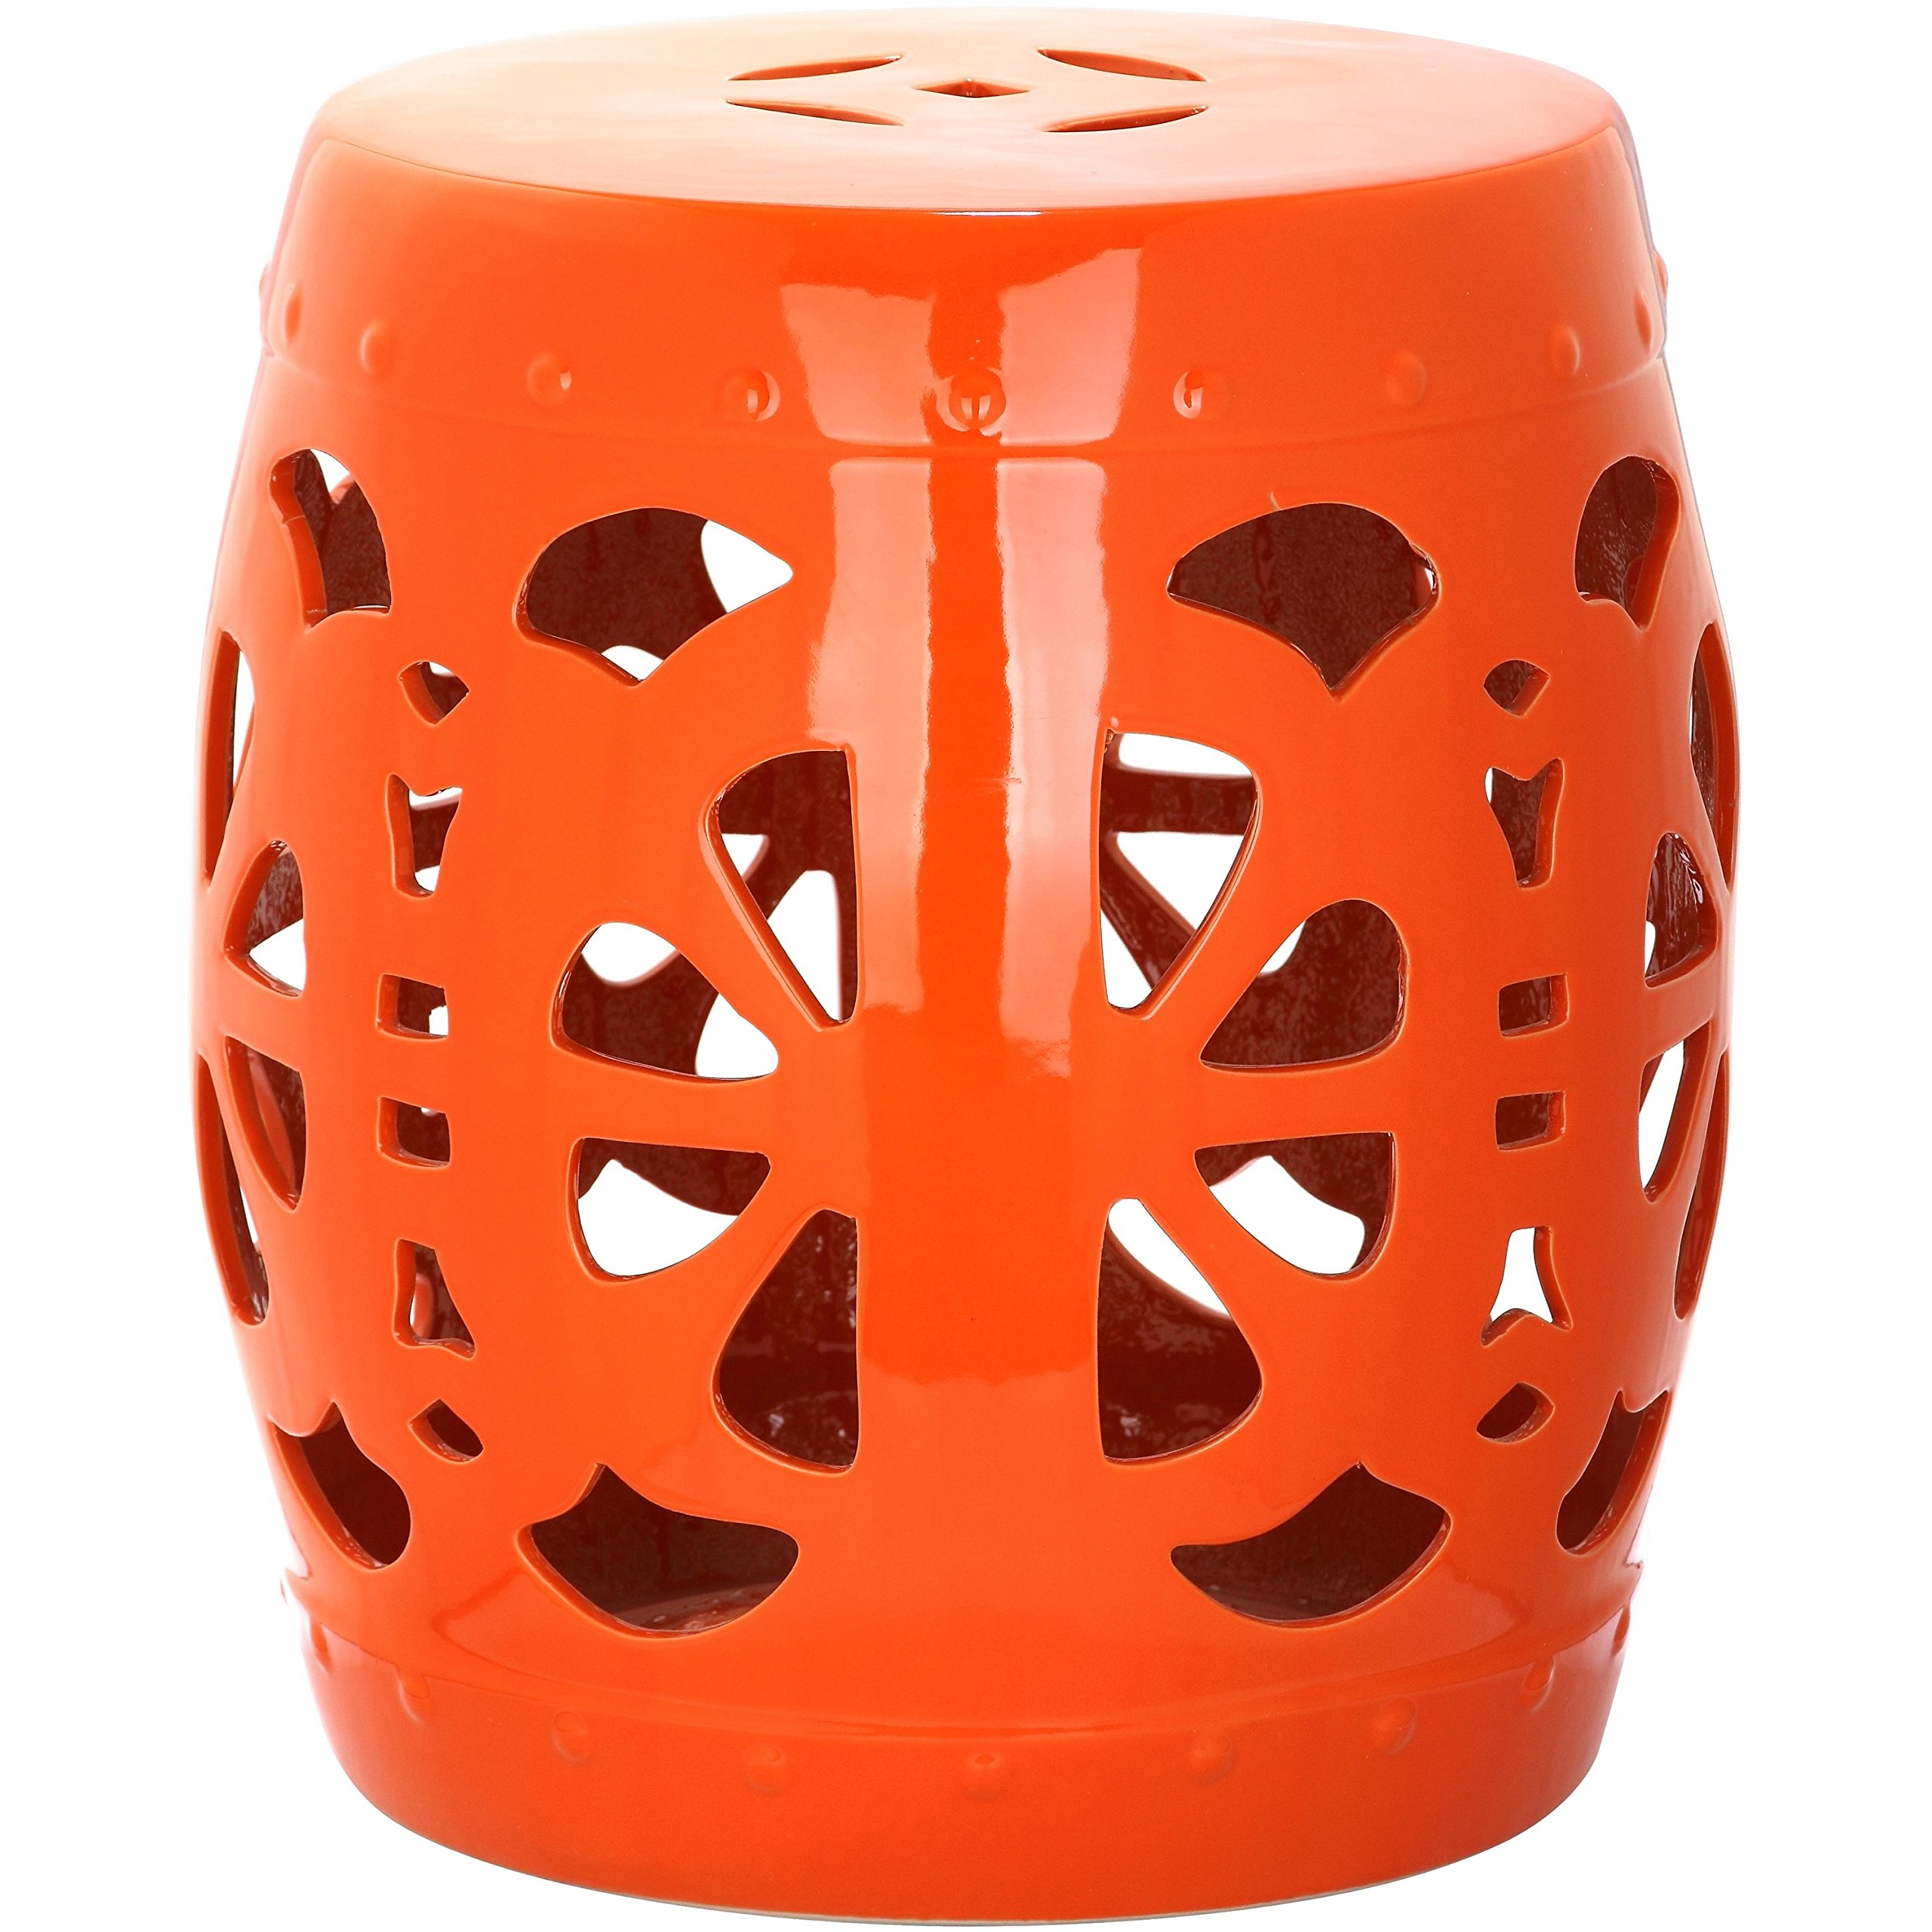 Safavieh Castle Gardens Collection Stencil Blossom Orange Glazed Ceramic Garden Stool